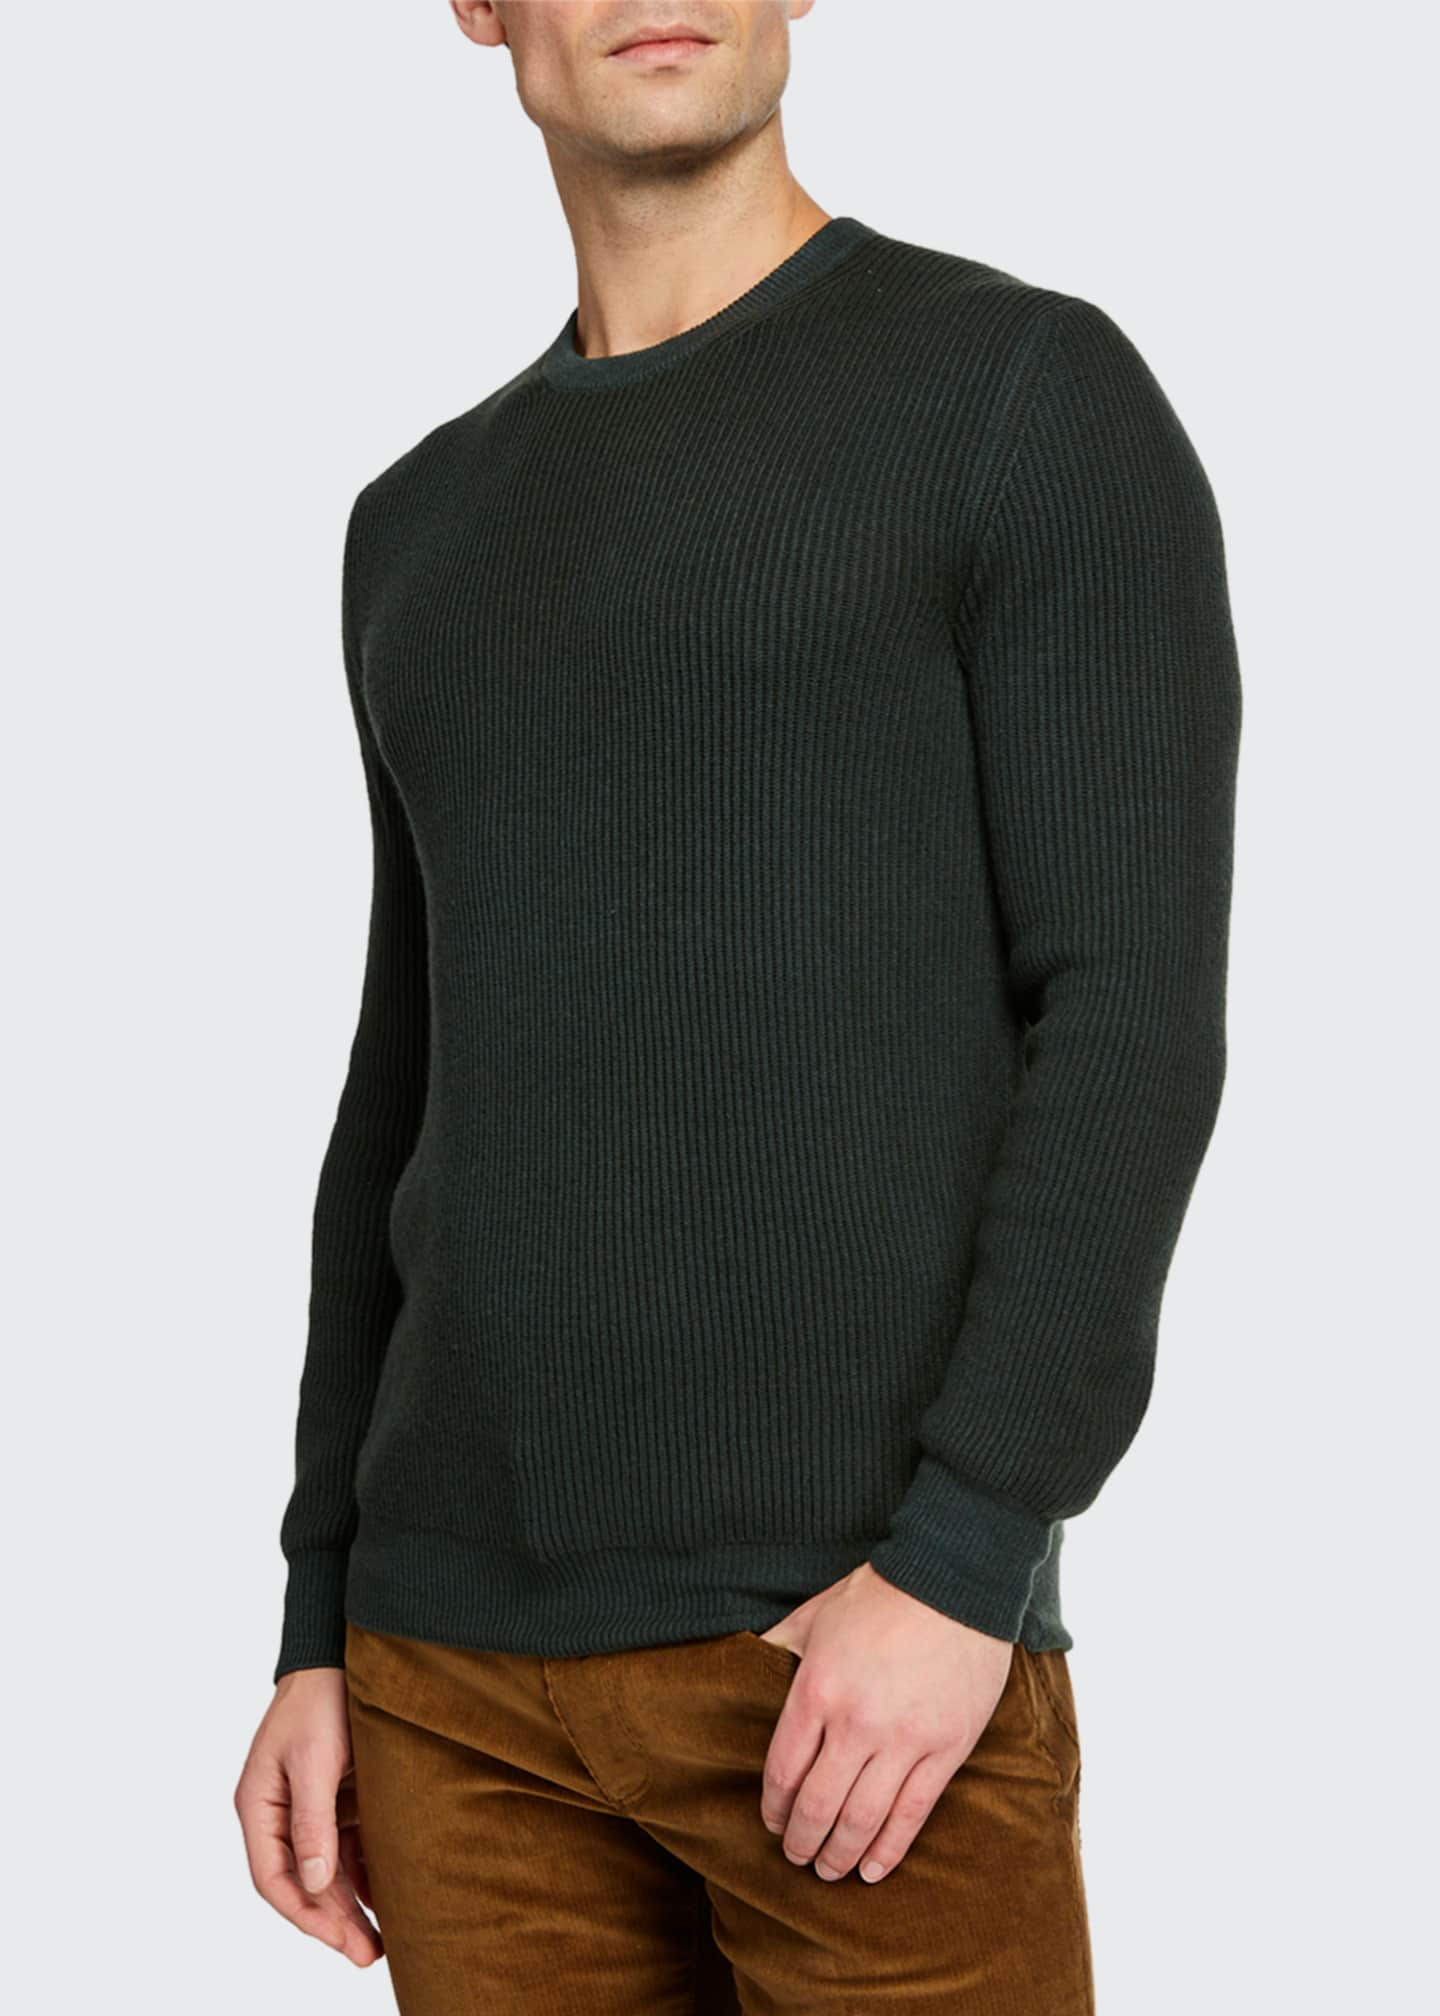 Men's Girocollo Cash York Ribbed Sweater